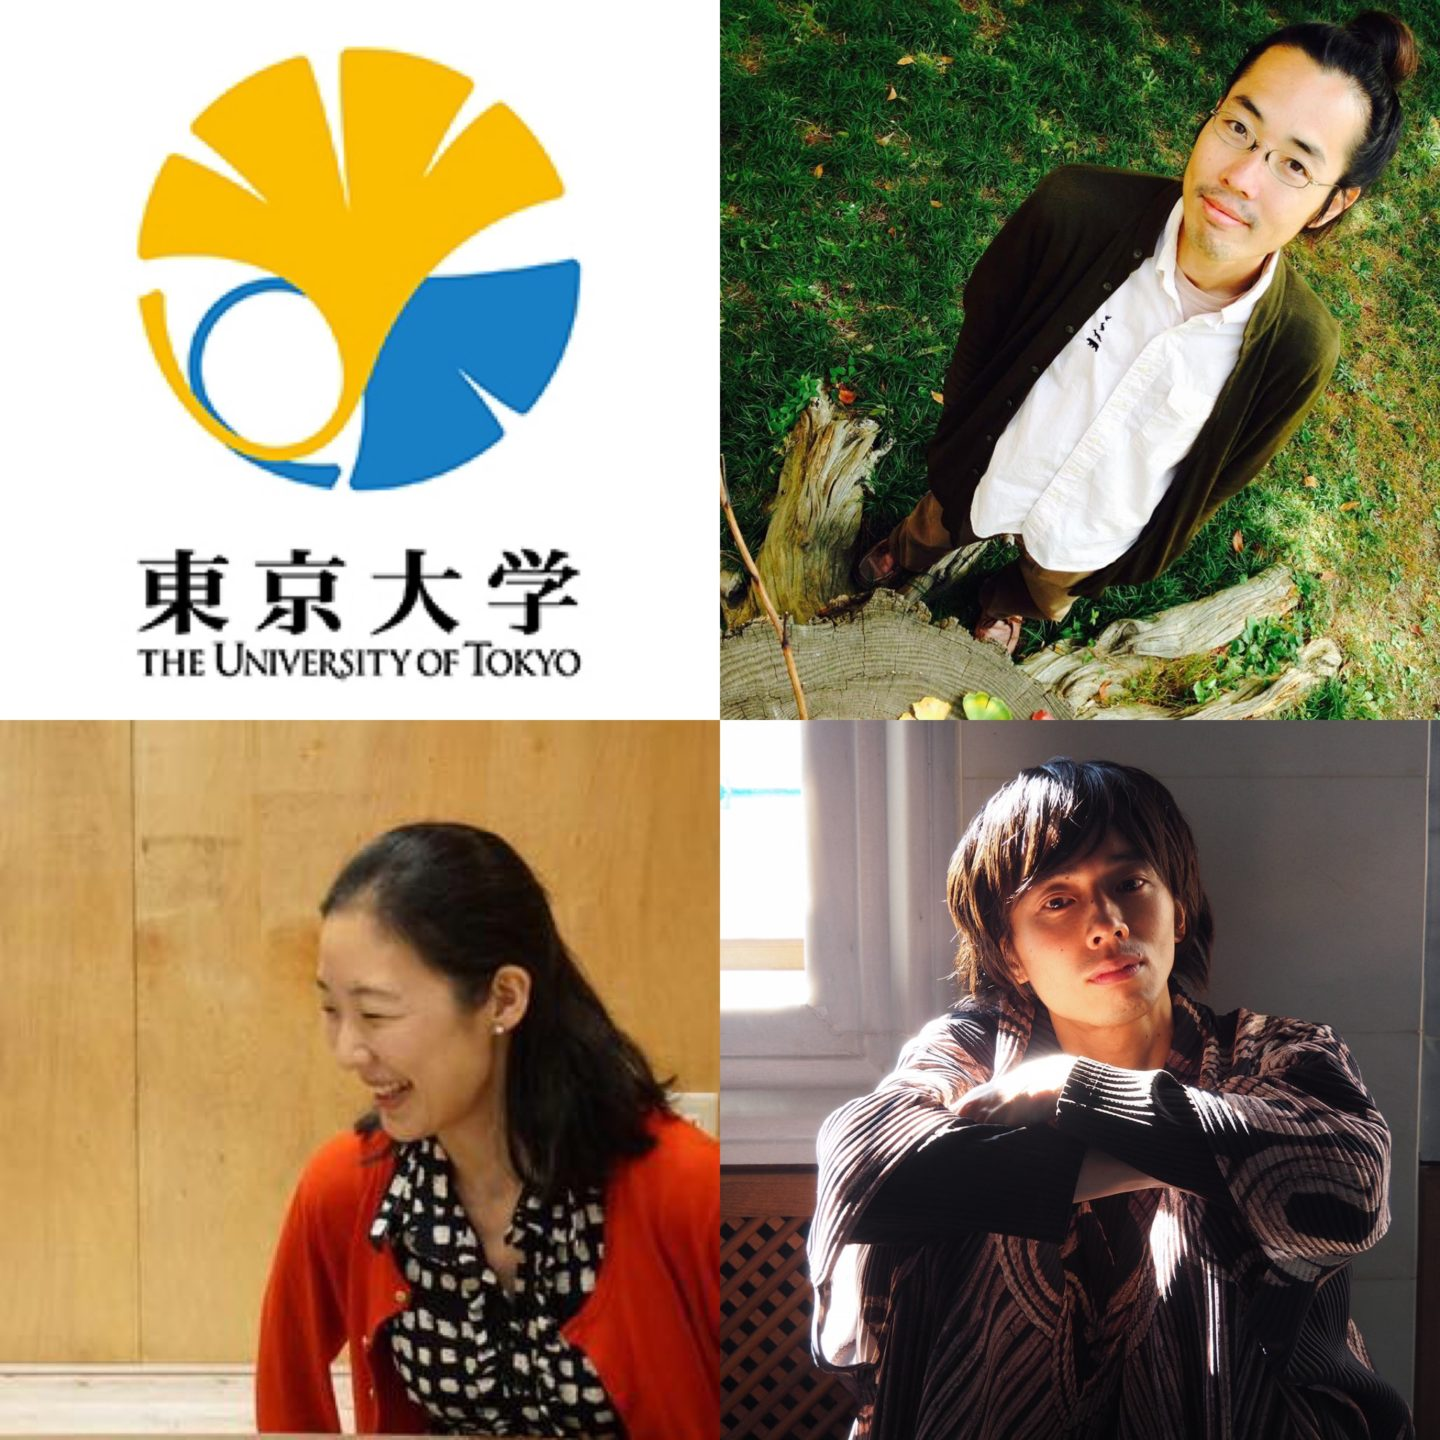 A Symposium at the University of Tokyo / 東京大学 シンポジウムへ向けて – 'The transformation processes of researchers and practitioners of mindfulness — Dialogues from a place of vulnerability'